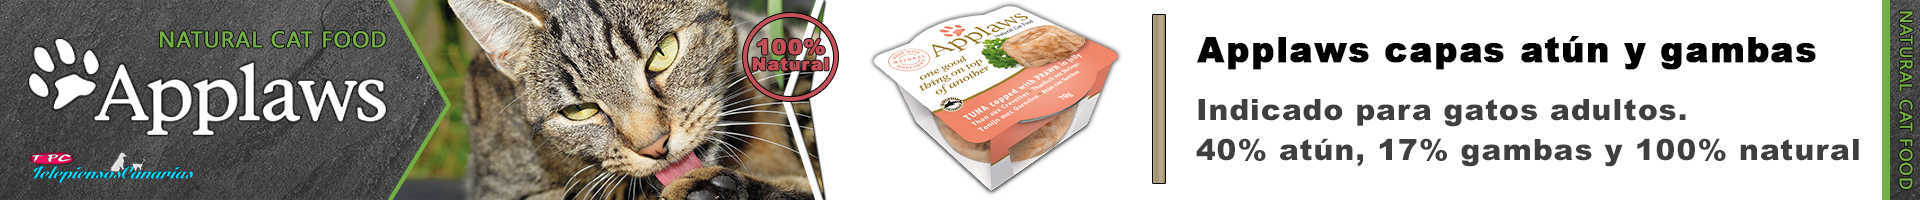 Applaws tasty capas con atún y gambas